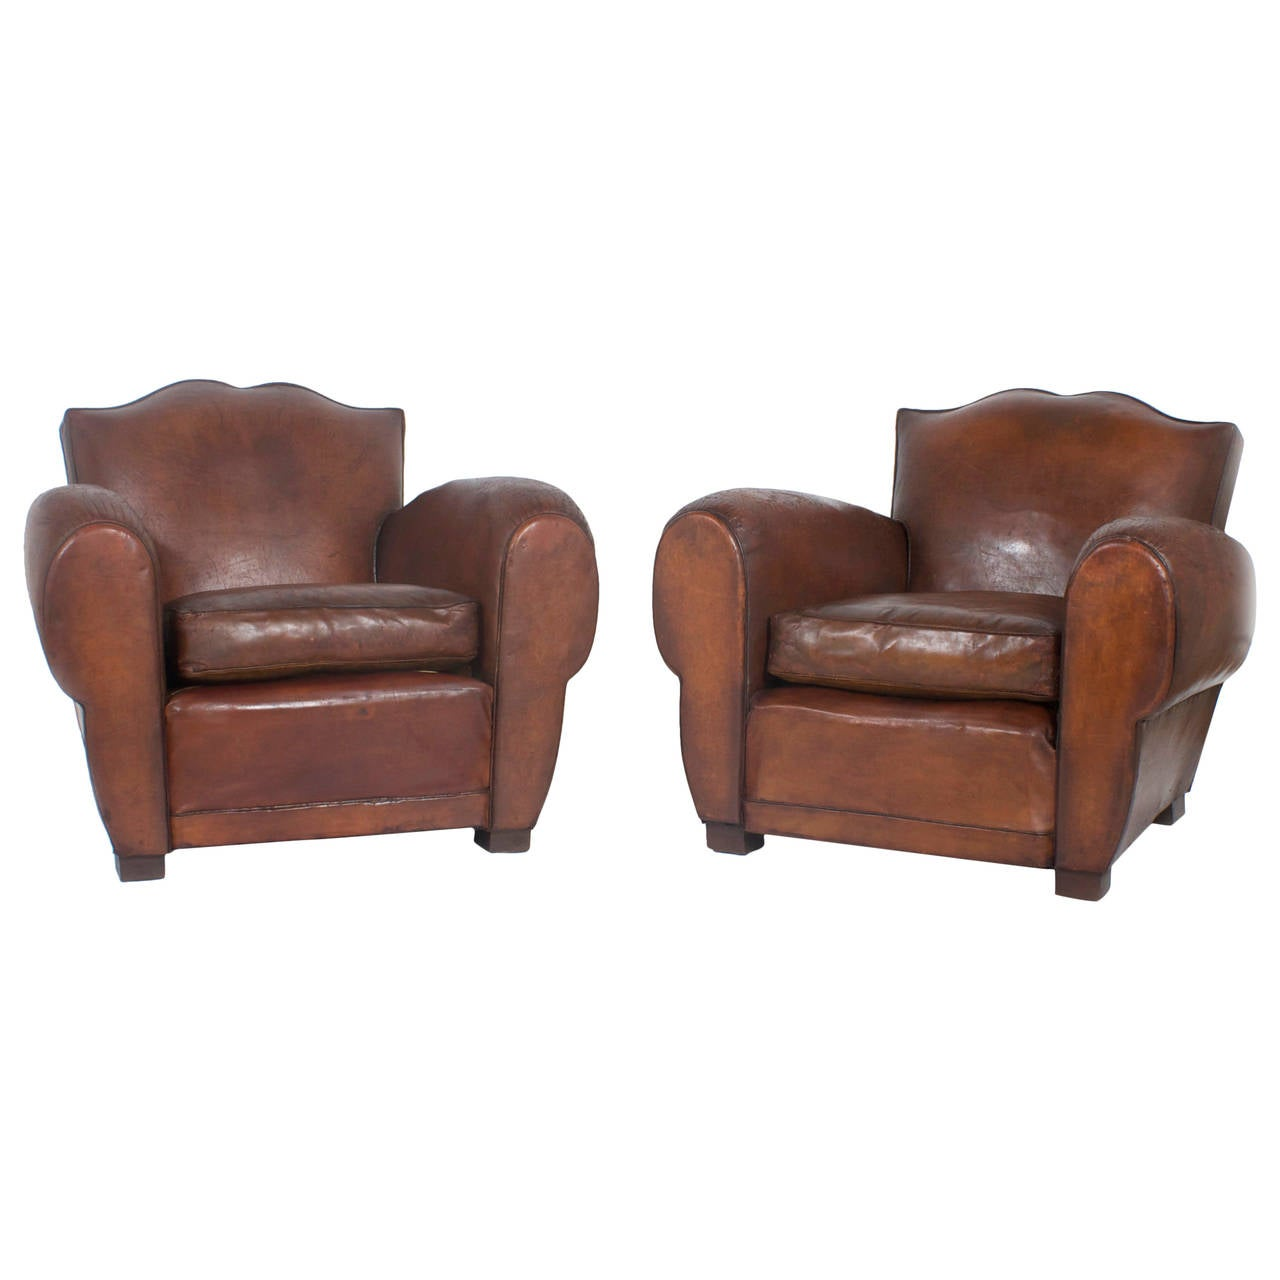 Pair Of French Leather Club Chairs At 1stdibs